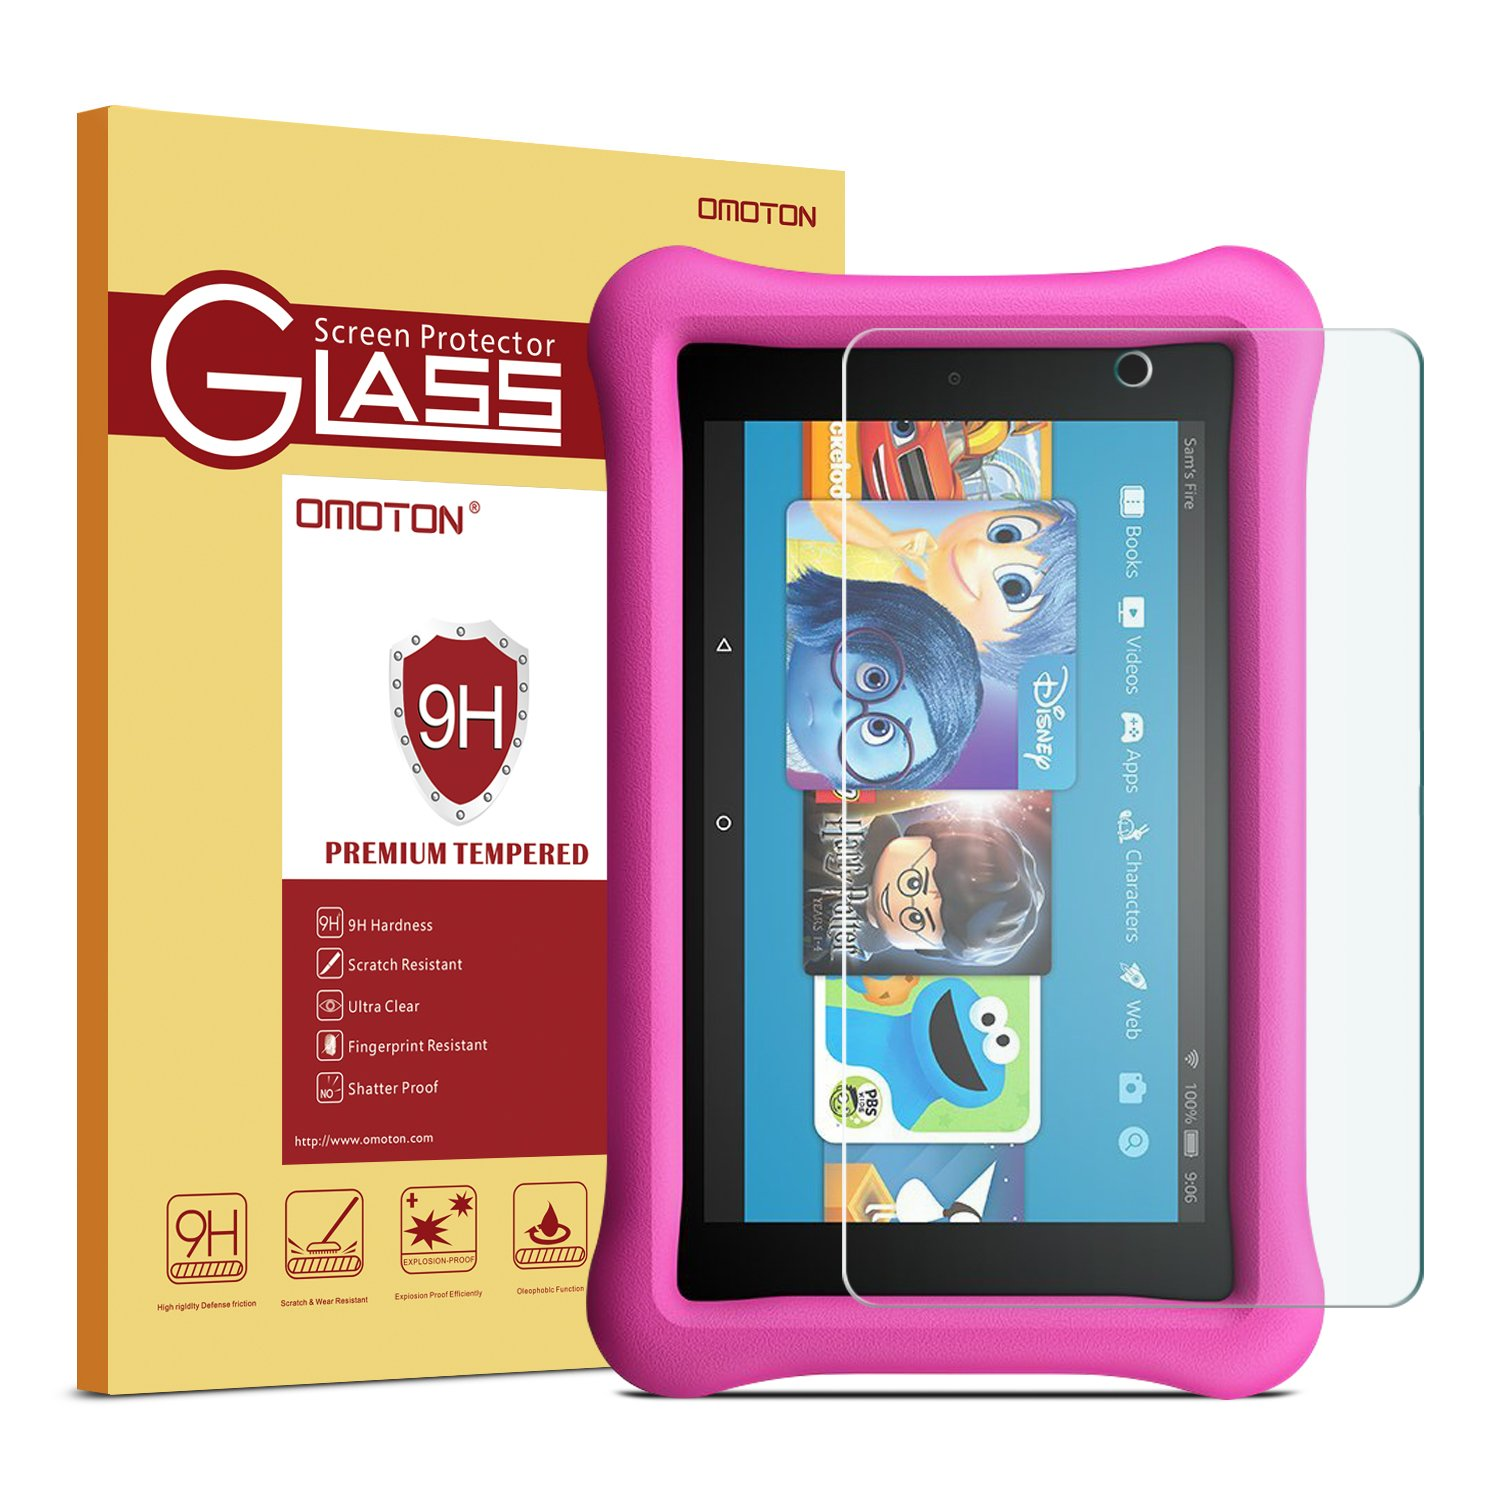 All-New Fire 7 / Fire 7 Kids Edition Screen Protector(Will Not Fit the 2015 version) OMOTON Tempered Glass Screen Protector for All-New Fire 7 / Fire 7 Kids Edition [7 Inch] (2017/2019 Released)